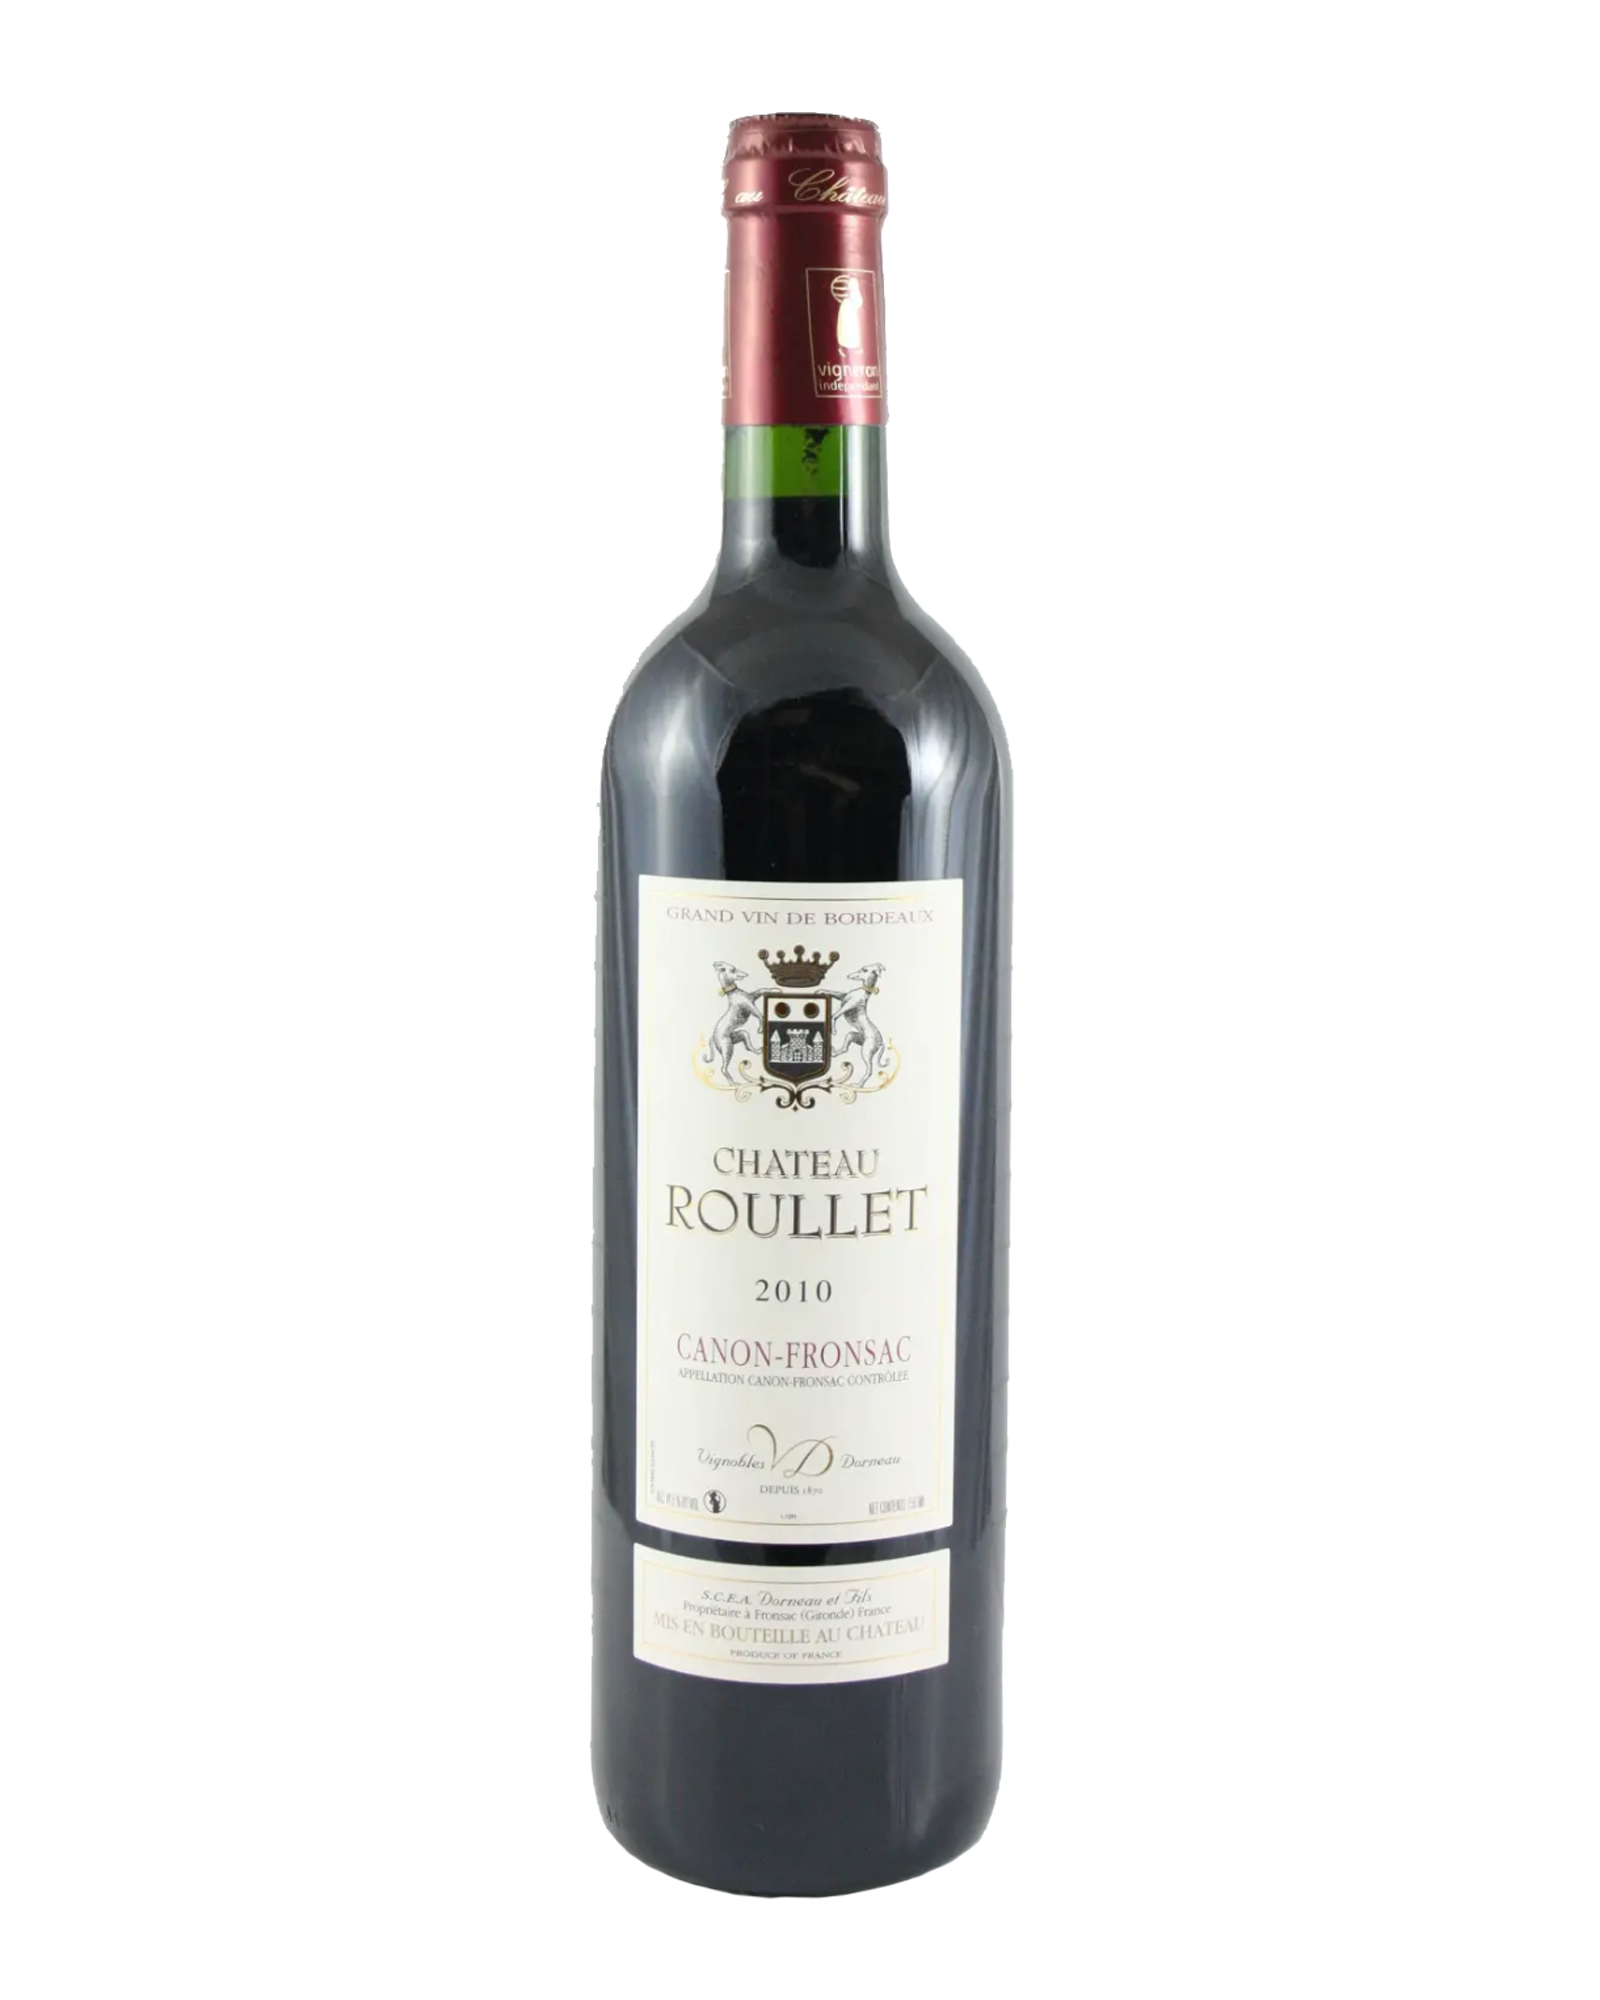 Chateau Roullet